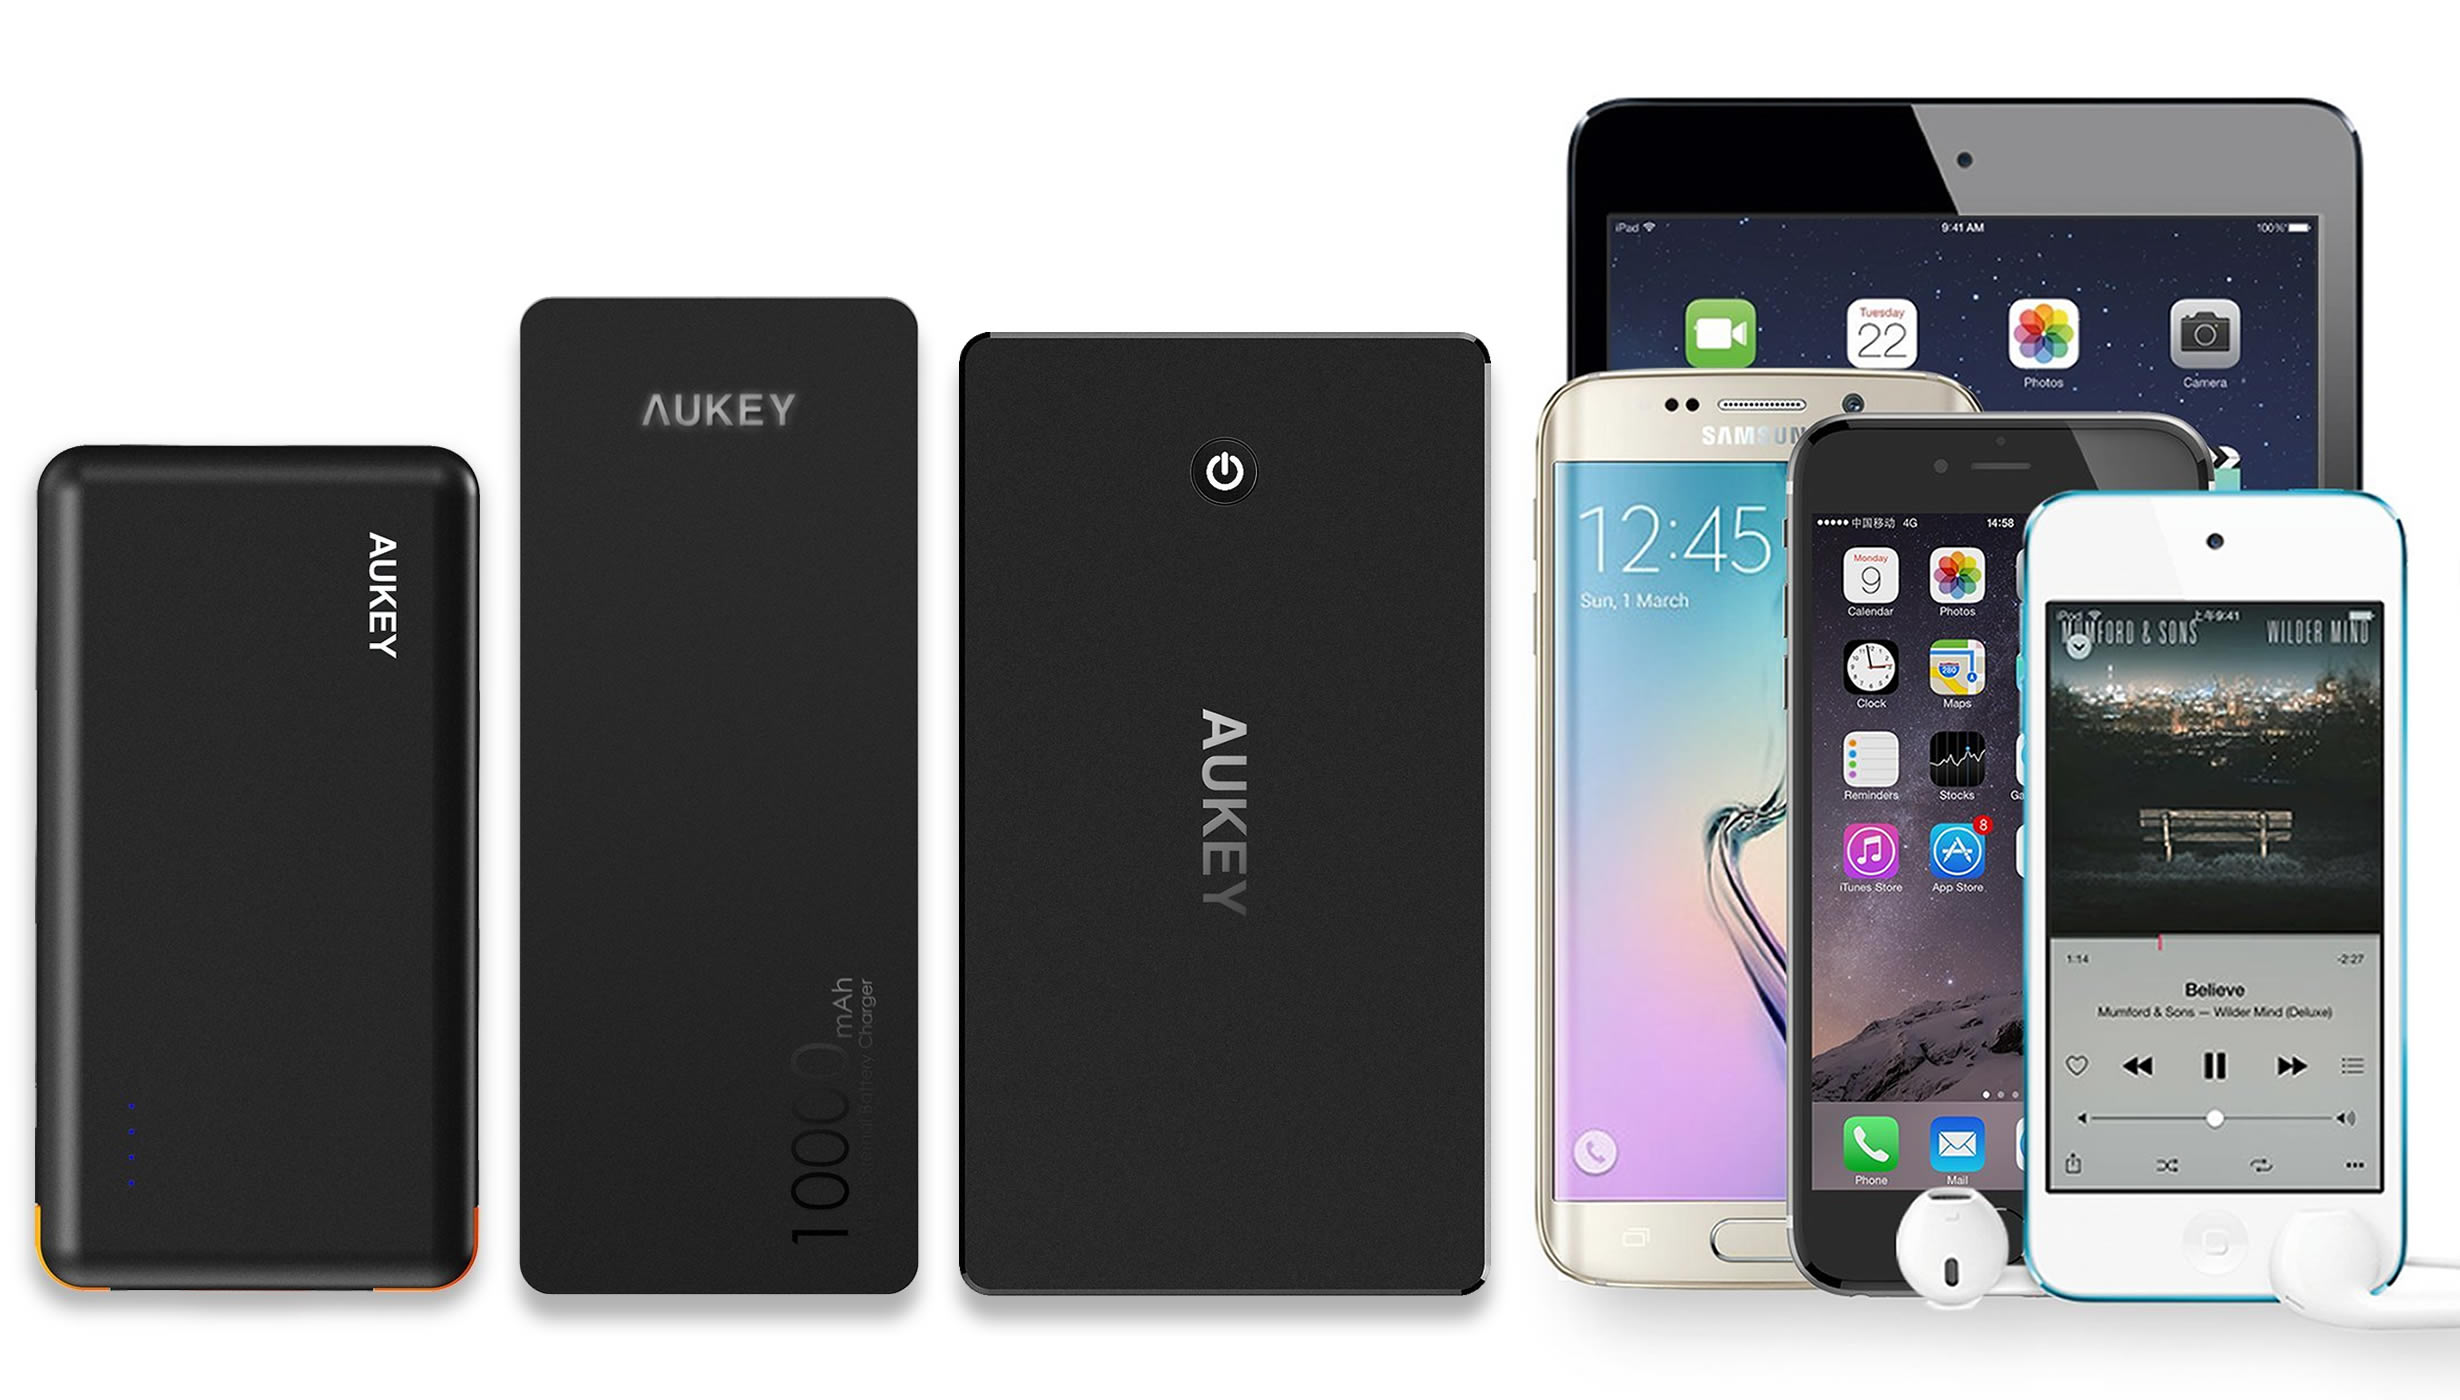 AUKEY power banks